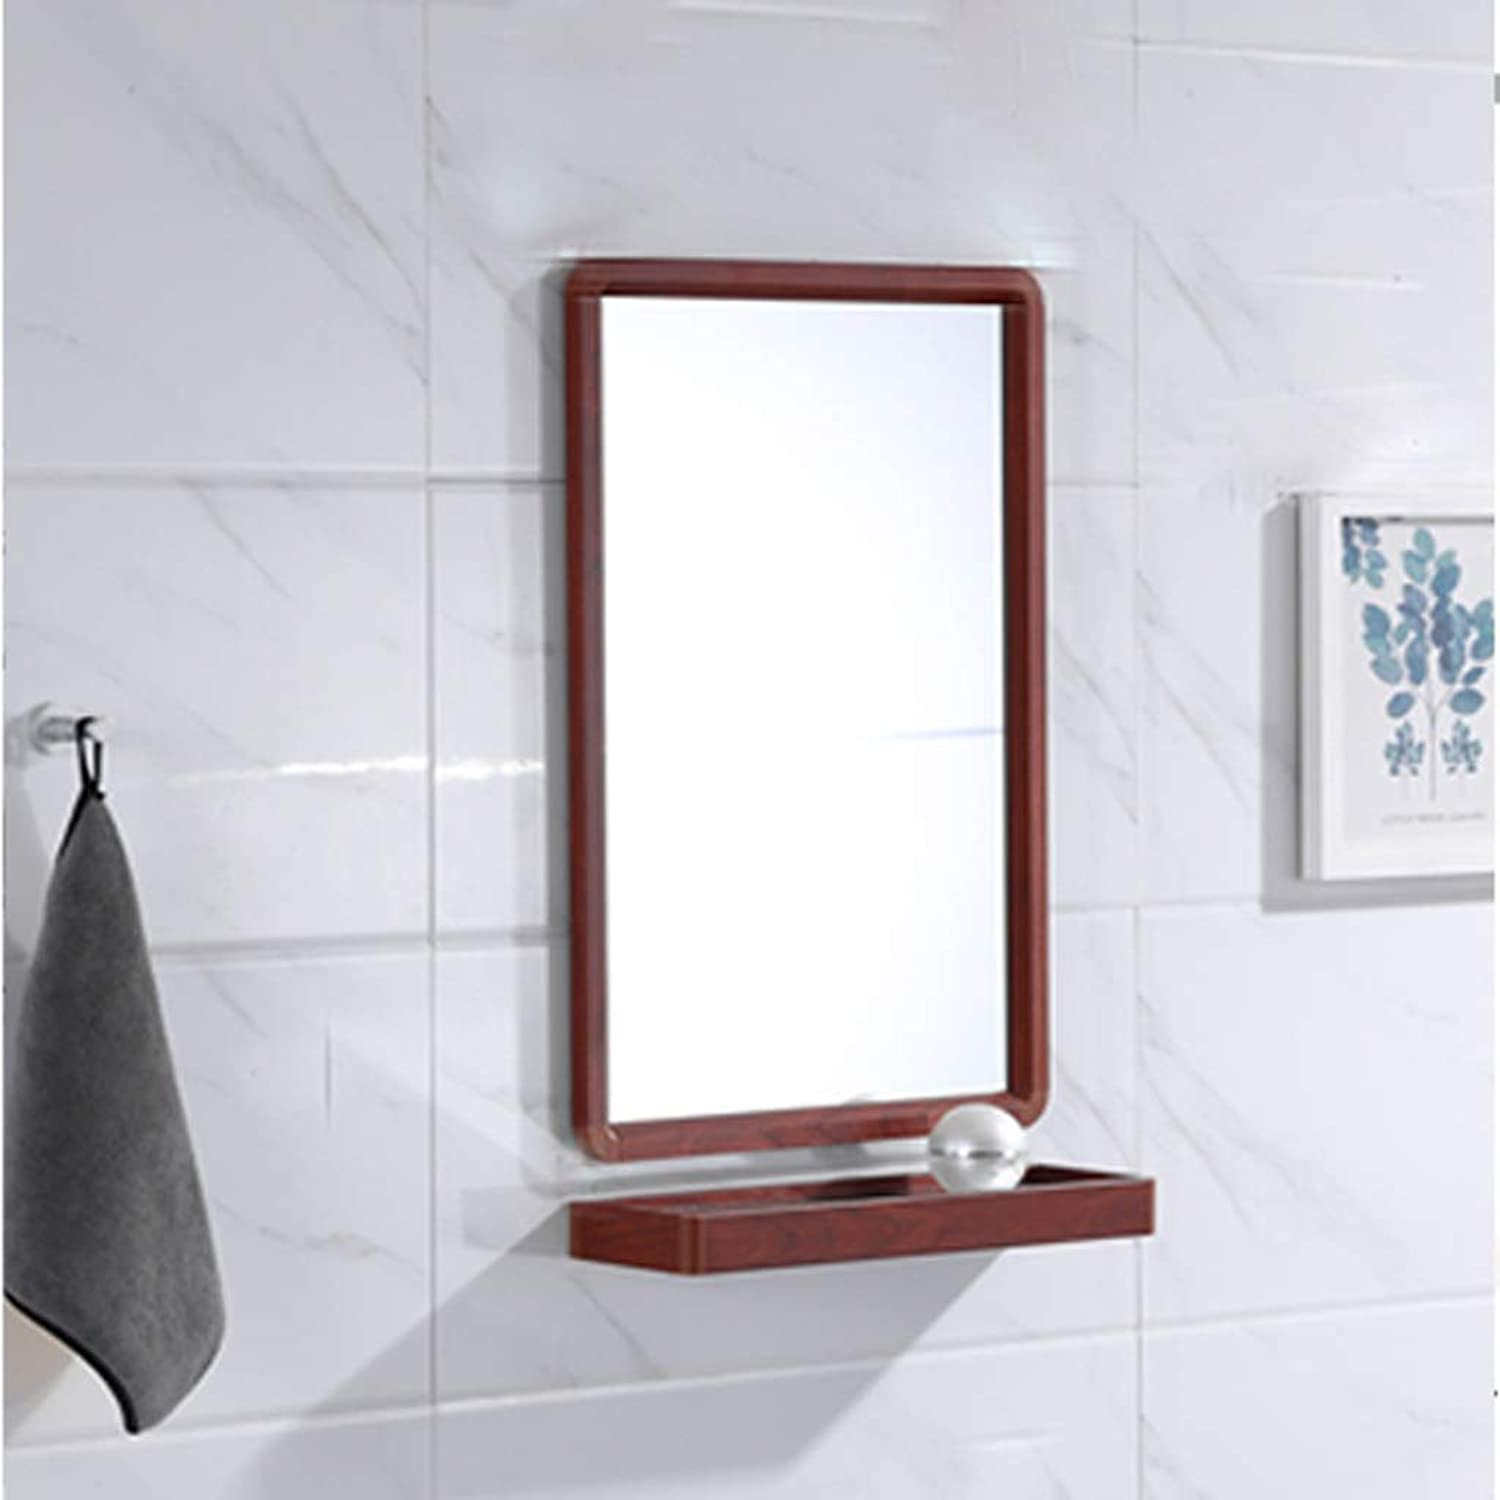 JUCAIYUAN Mirror Wall-Mounted Mirror Large Flat-Frame Wall Mirror Vanity Mirror Washbasin Mirror with Bathroom Shelf (color   Redwood, Size   60X40CM)